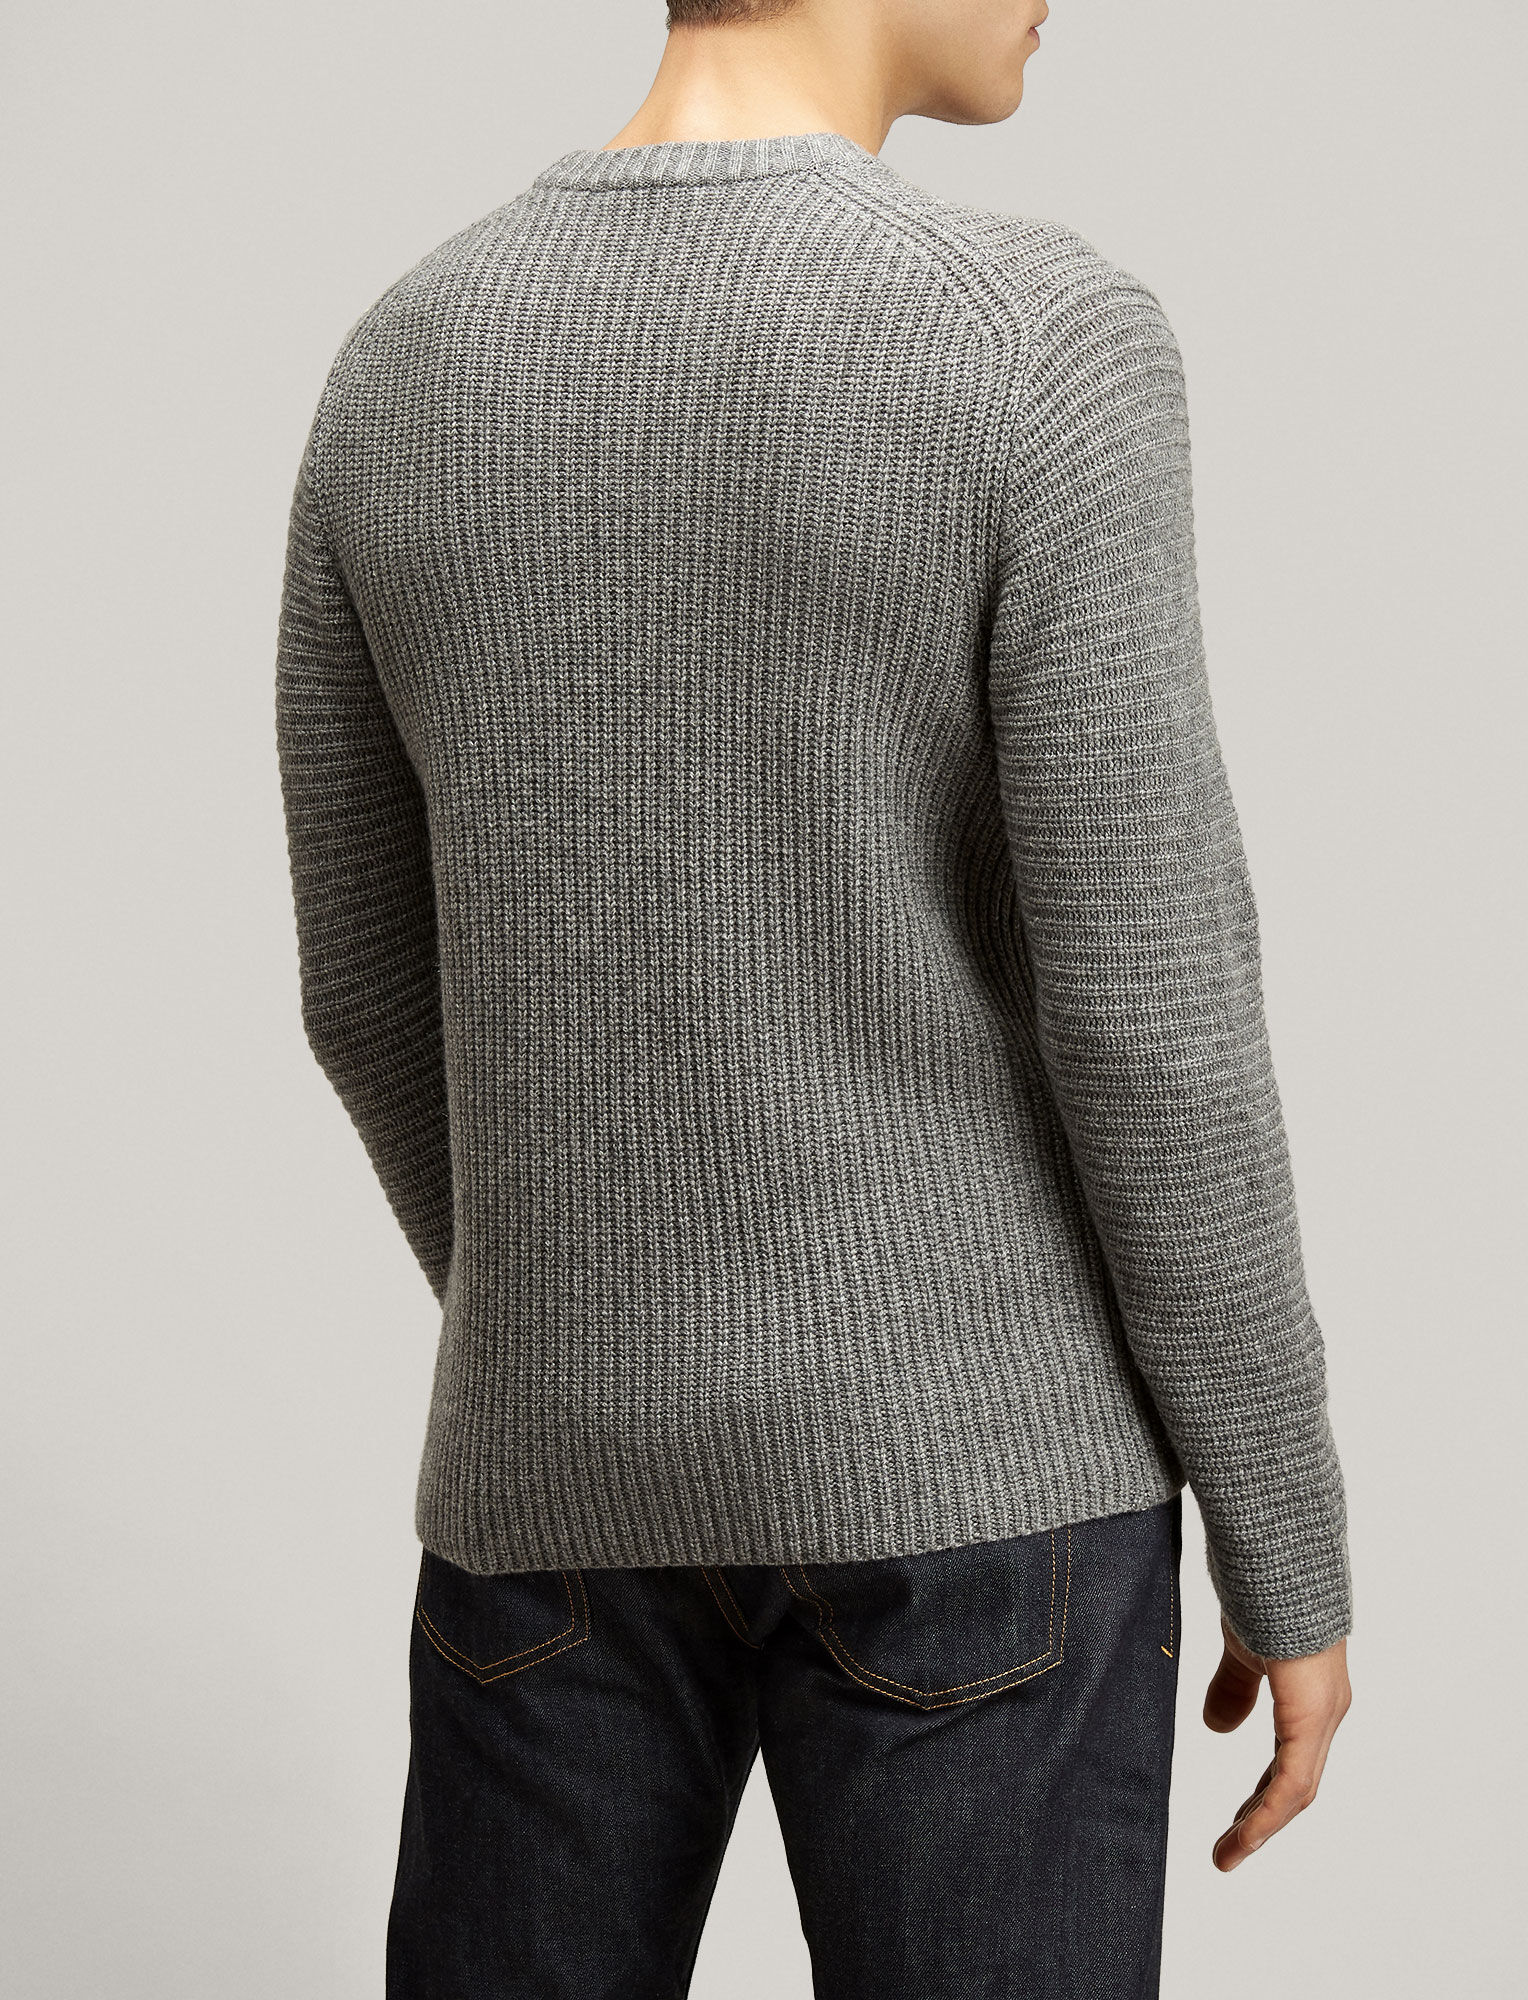 Joseph, Cardigan Cashmere Sweater, in GRAPHITE